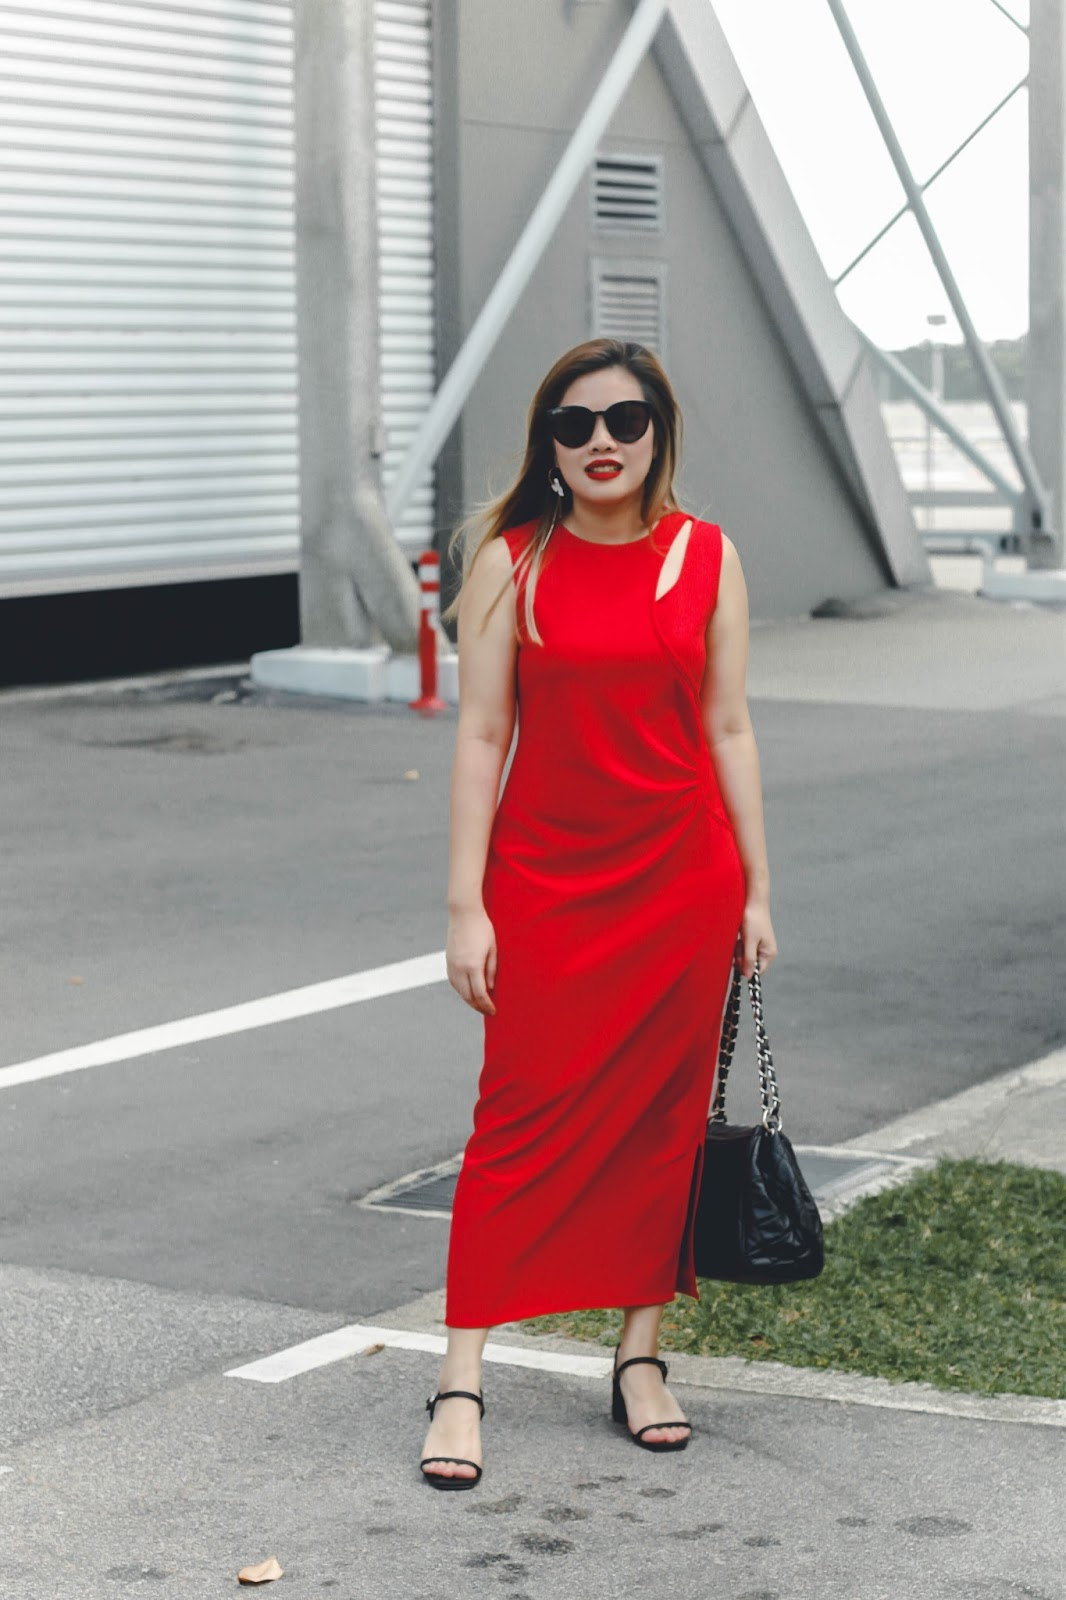 singapore blogger style look book street stylist fashion photographer photography red what to wear